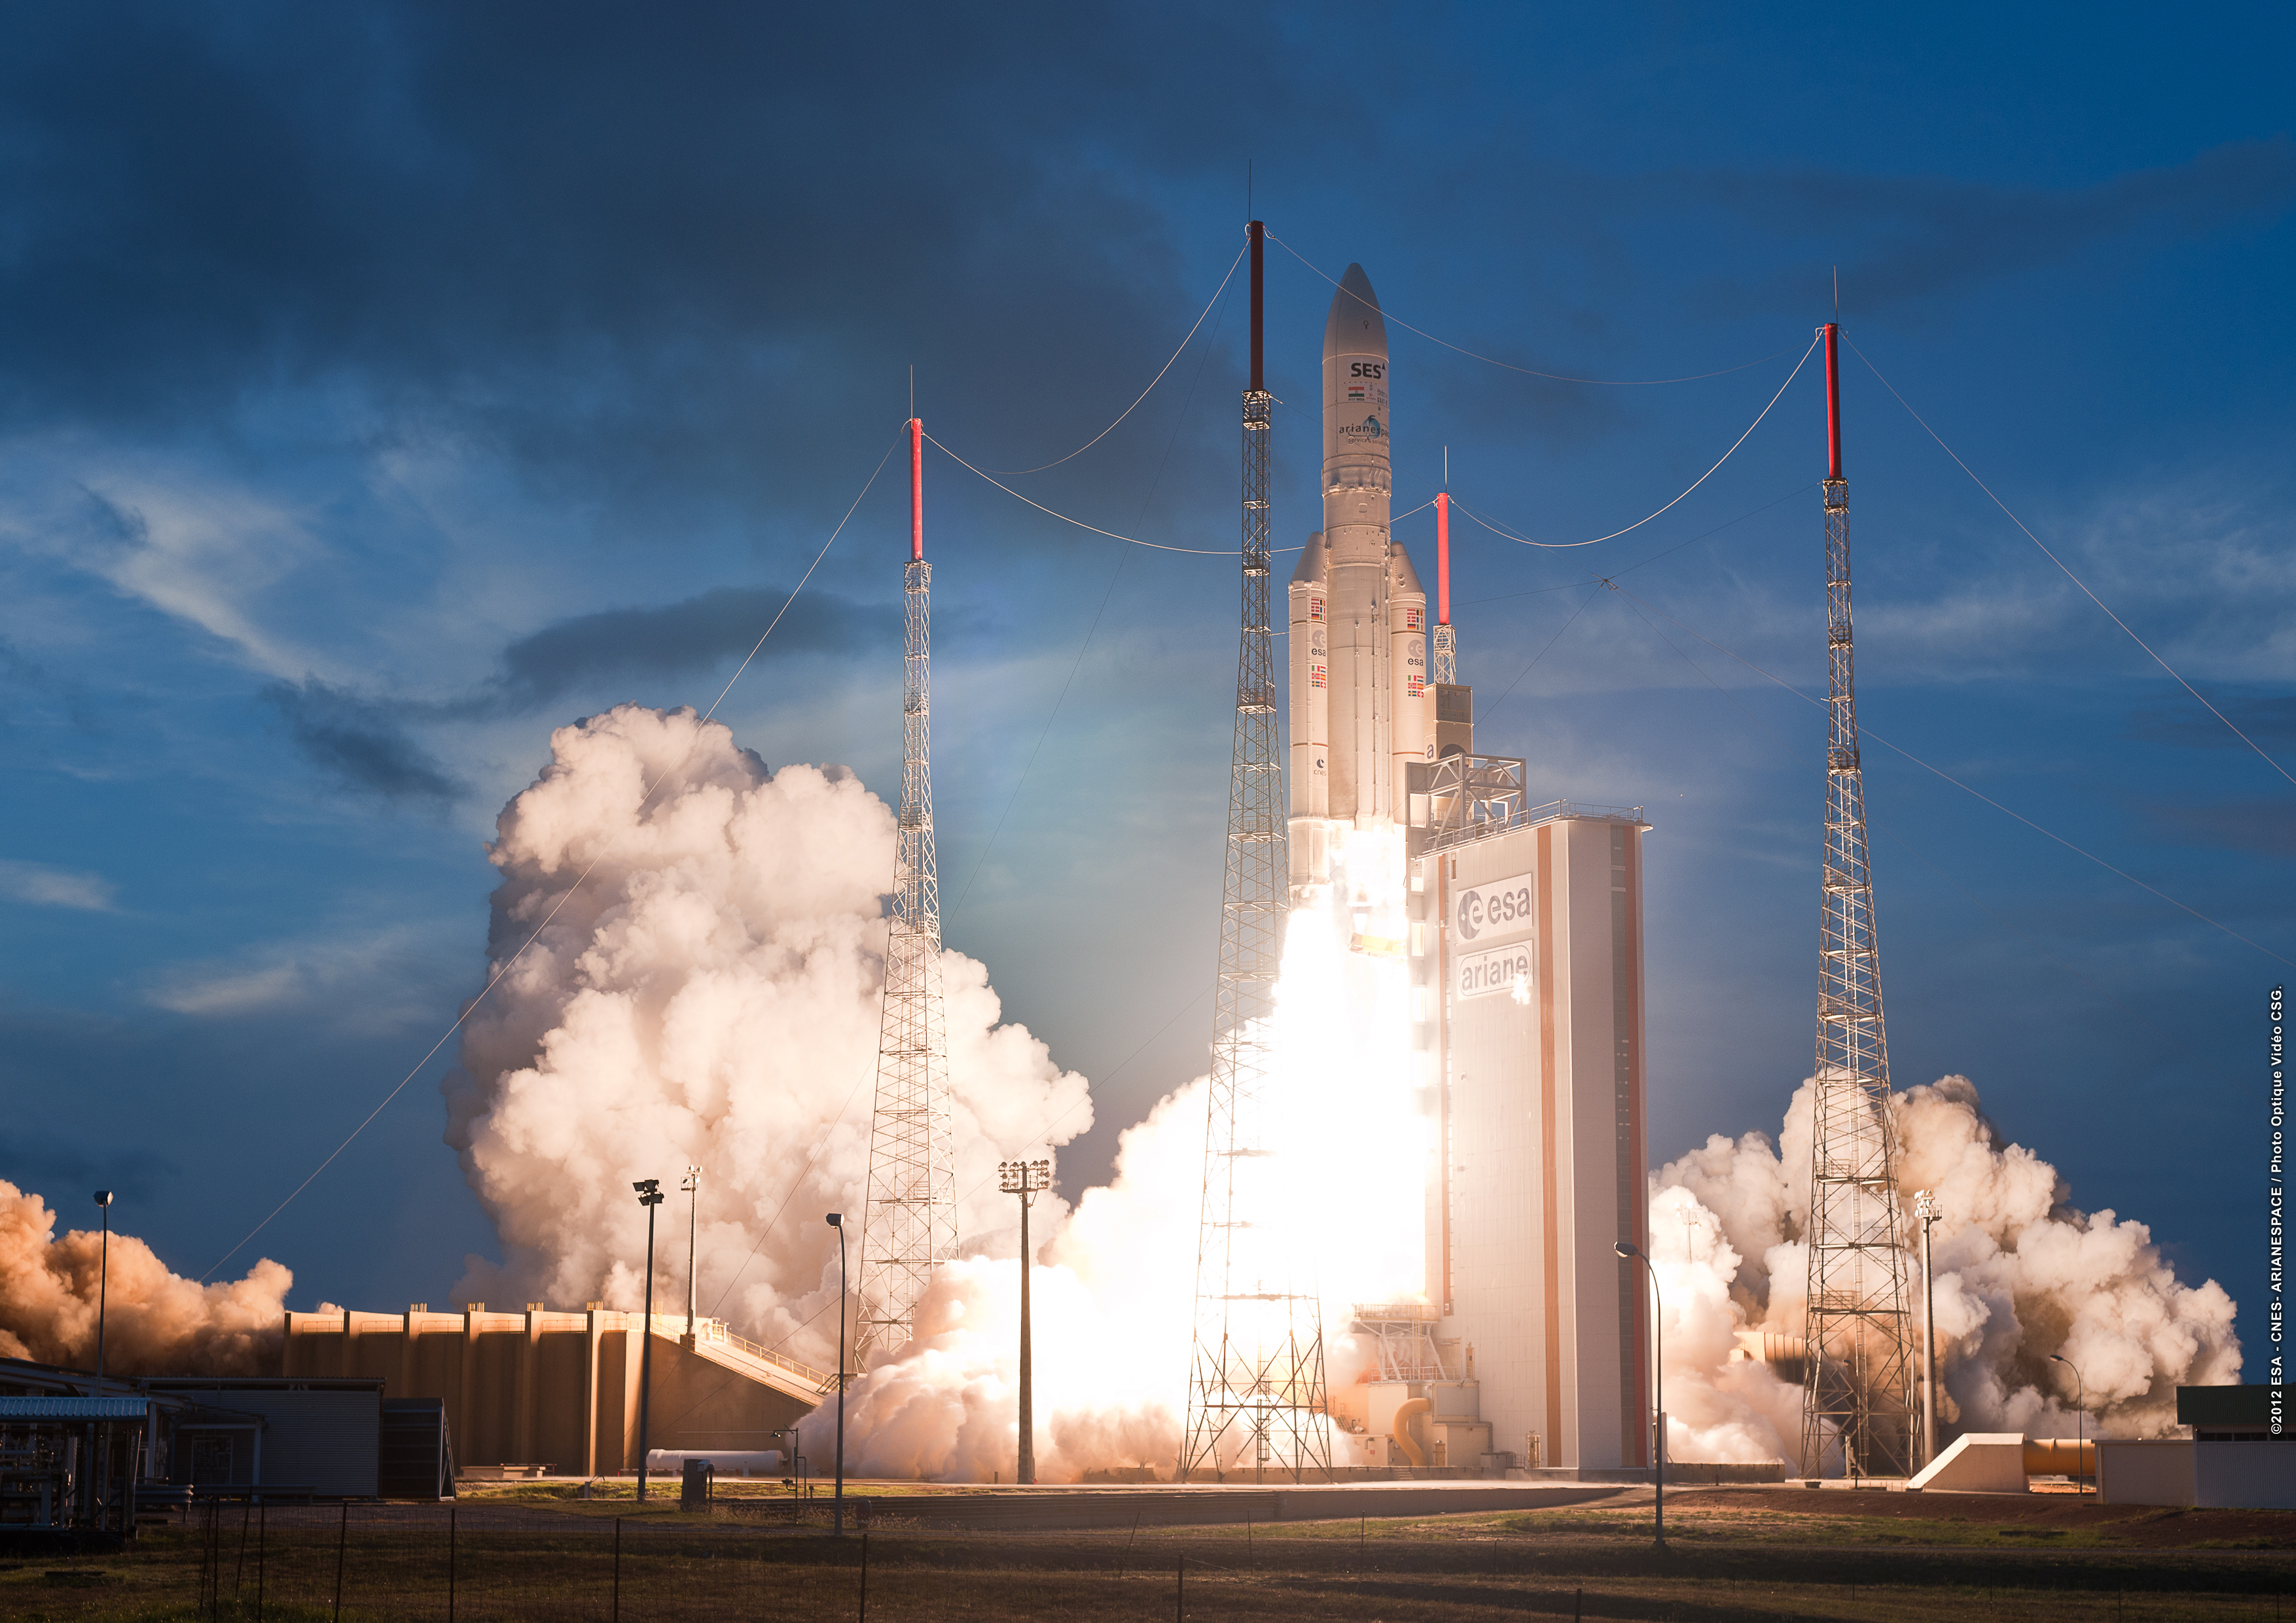 ariane 5 Go on a virtual date with me, ariane, to datingarianecom click here to begin go to the new ariane 10th anniversary version at langangencom go to redemption for.